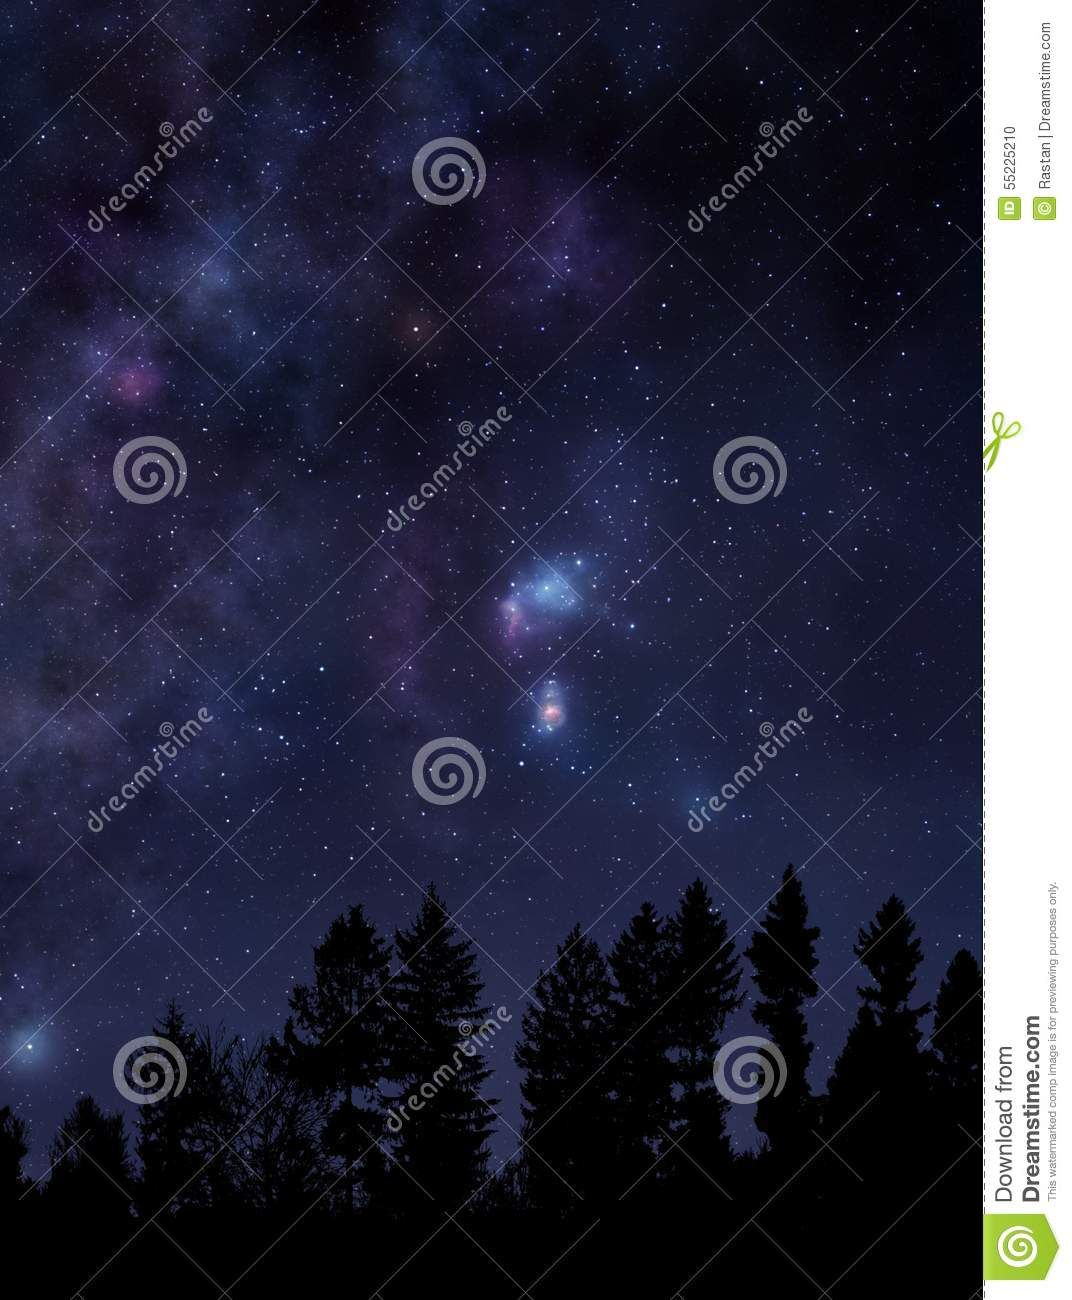 Starry Night Sky Over The Forest Stock Photo Image Of Dreamy Galactic 55225210 Red Peonies Flower Frame Png Purple Peonies